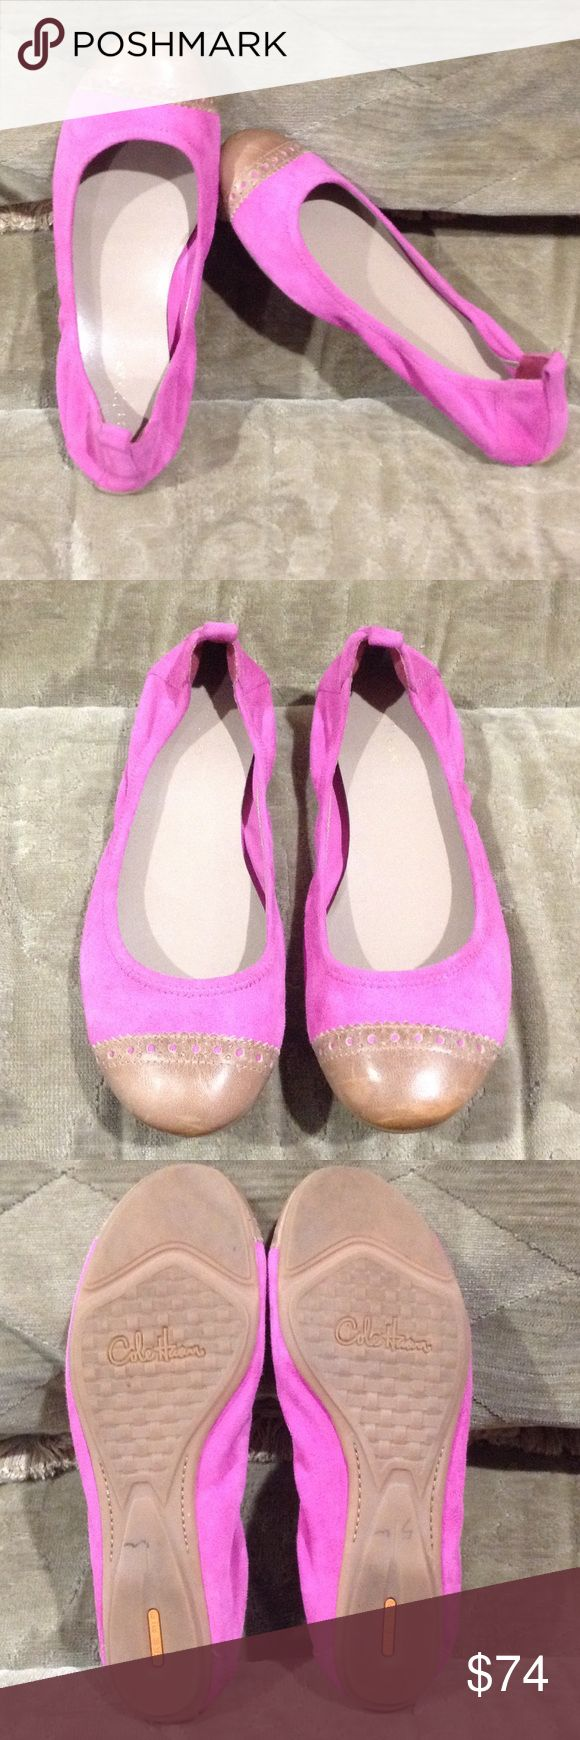 Cole Haan  Nike Air Pink Ballet Flats Adorable pink suede and tan leather toe. So cute and comfy. Cole Haan Shoes Flats & Loafers